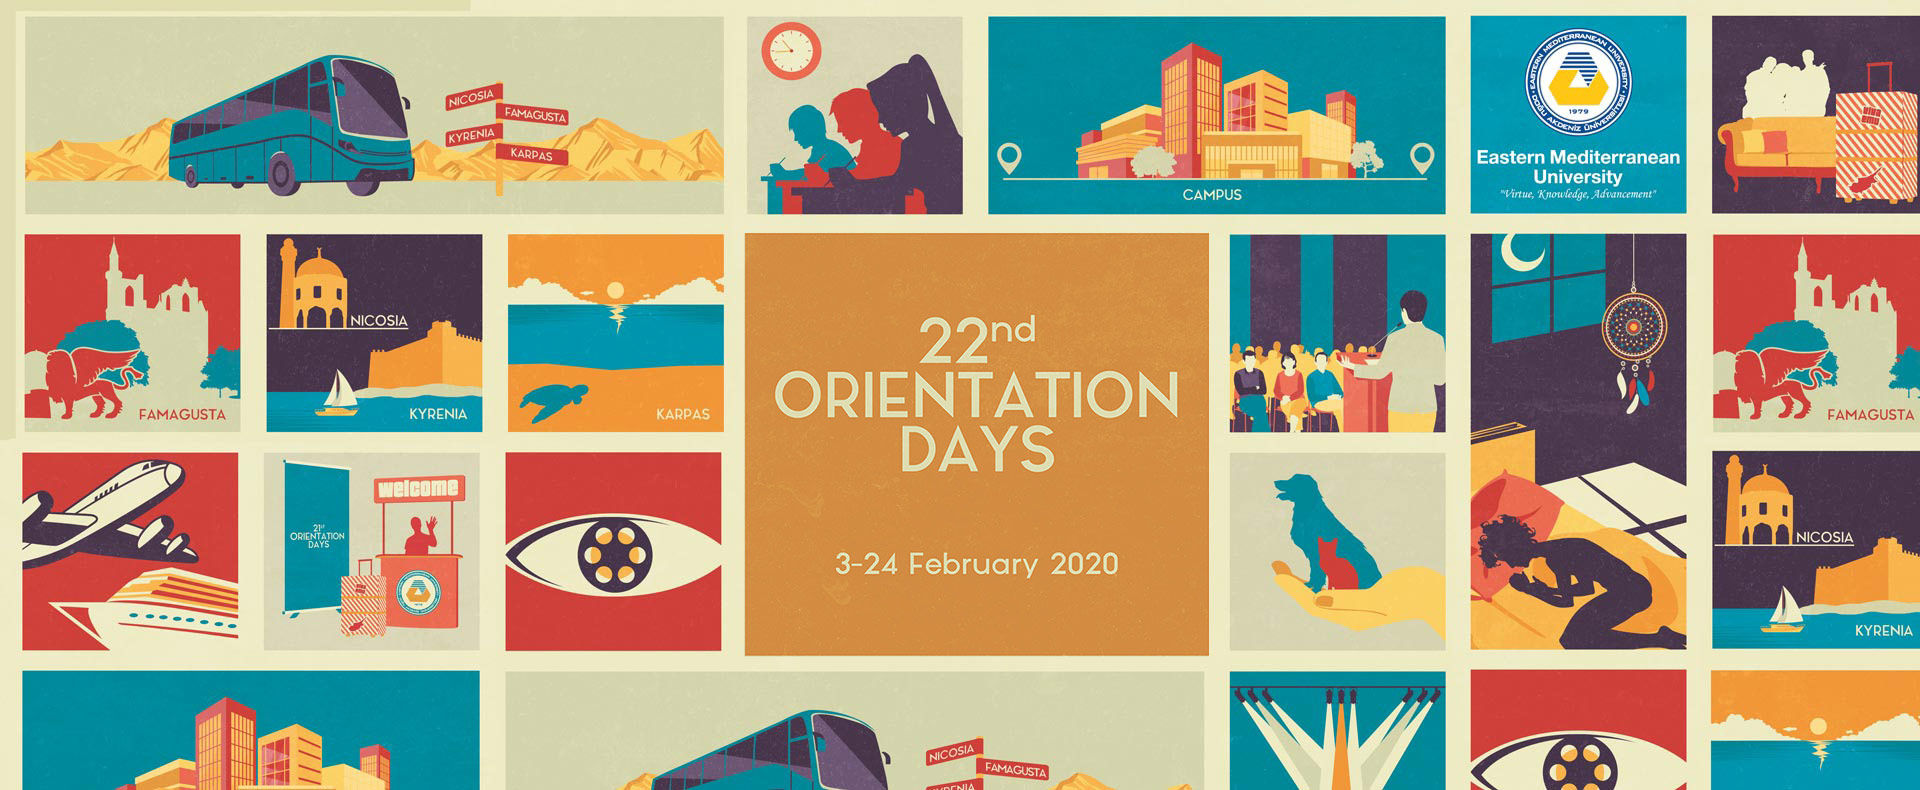 Orientation Days: 6 - 28 September 2018